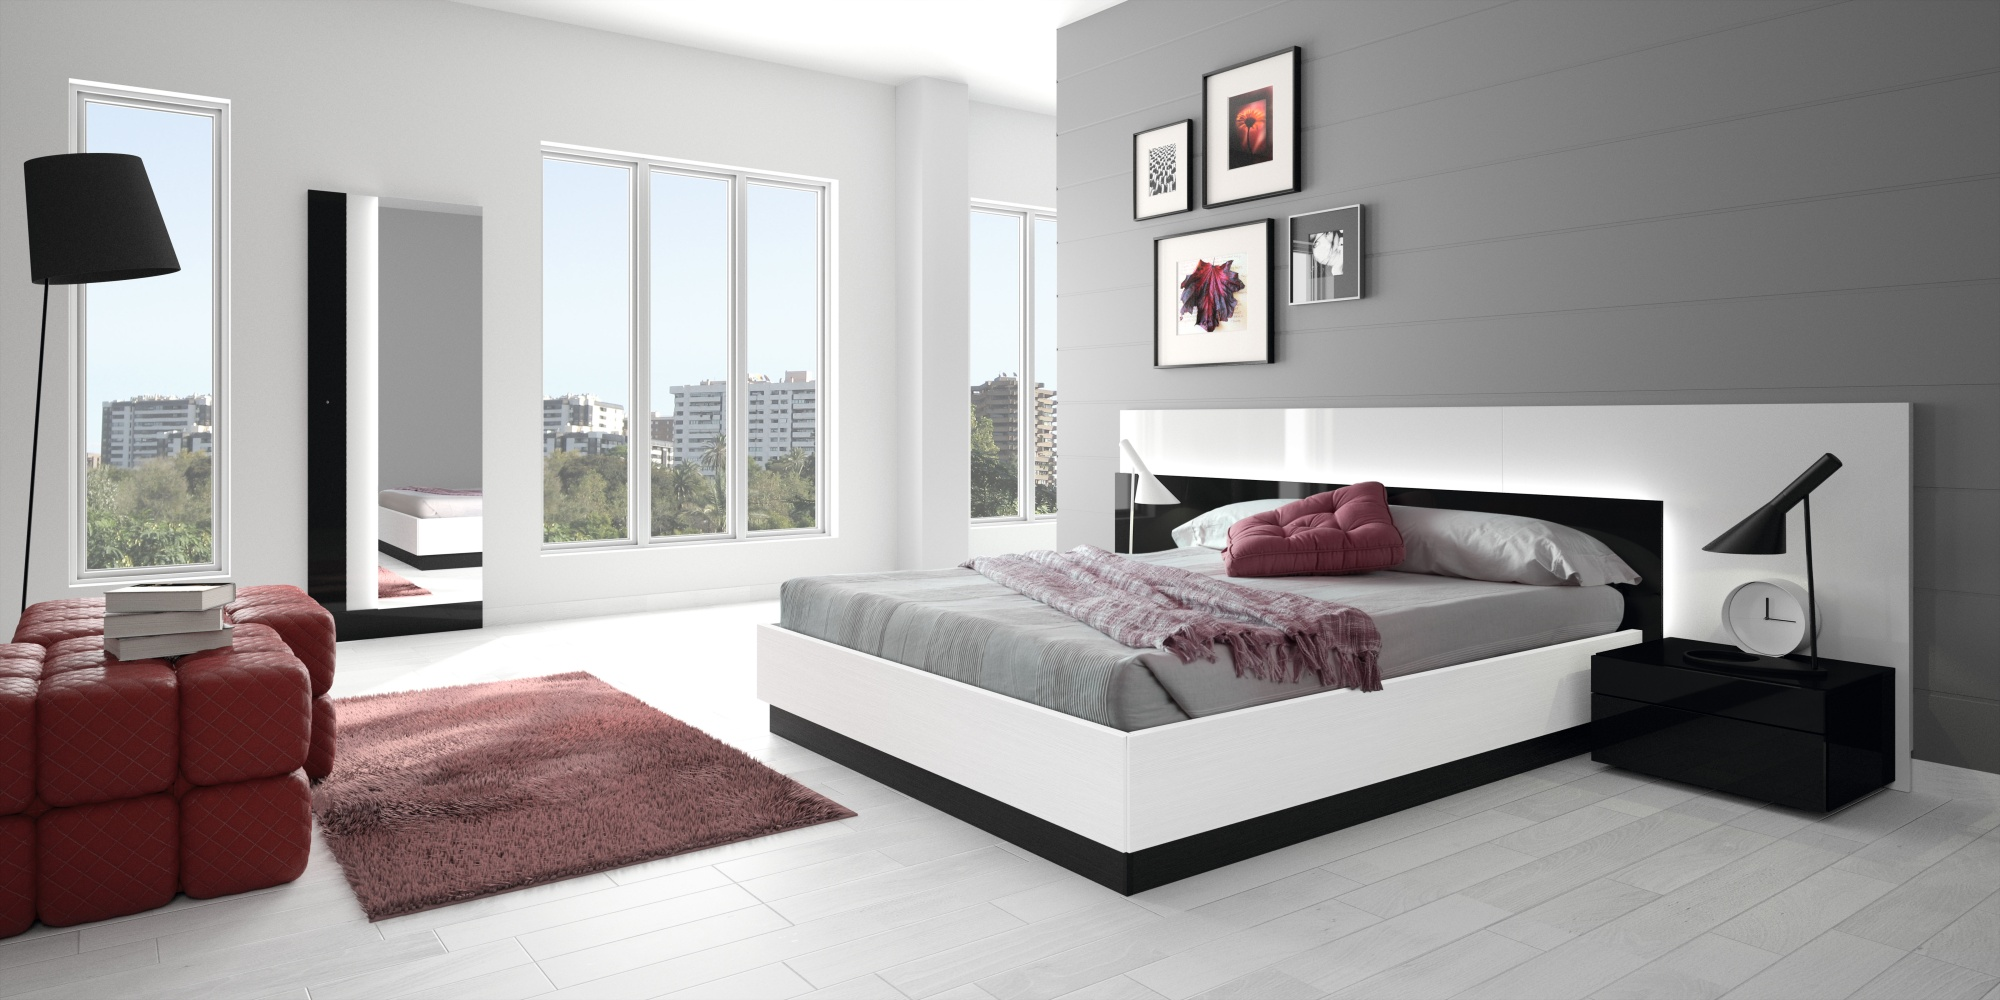 25 bedroom furniture design ideas for Modern bedroom interior